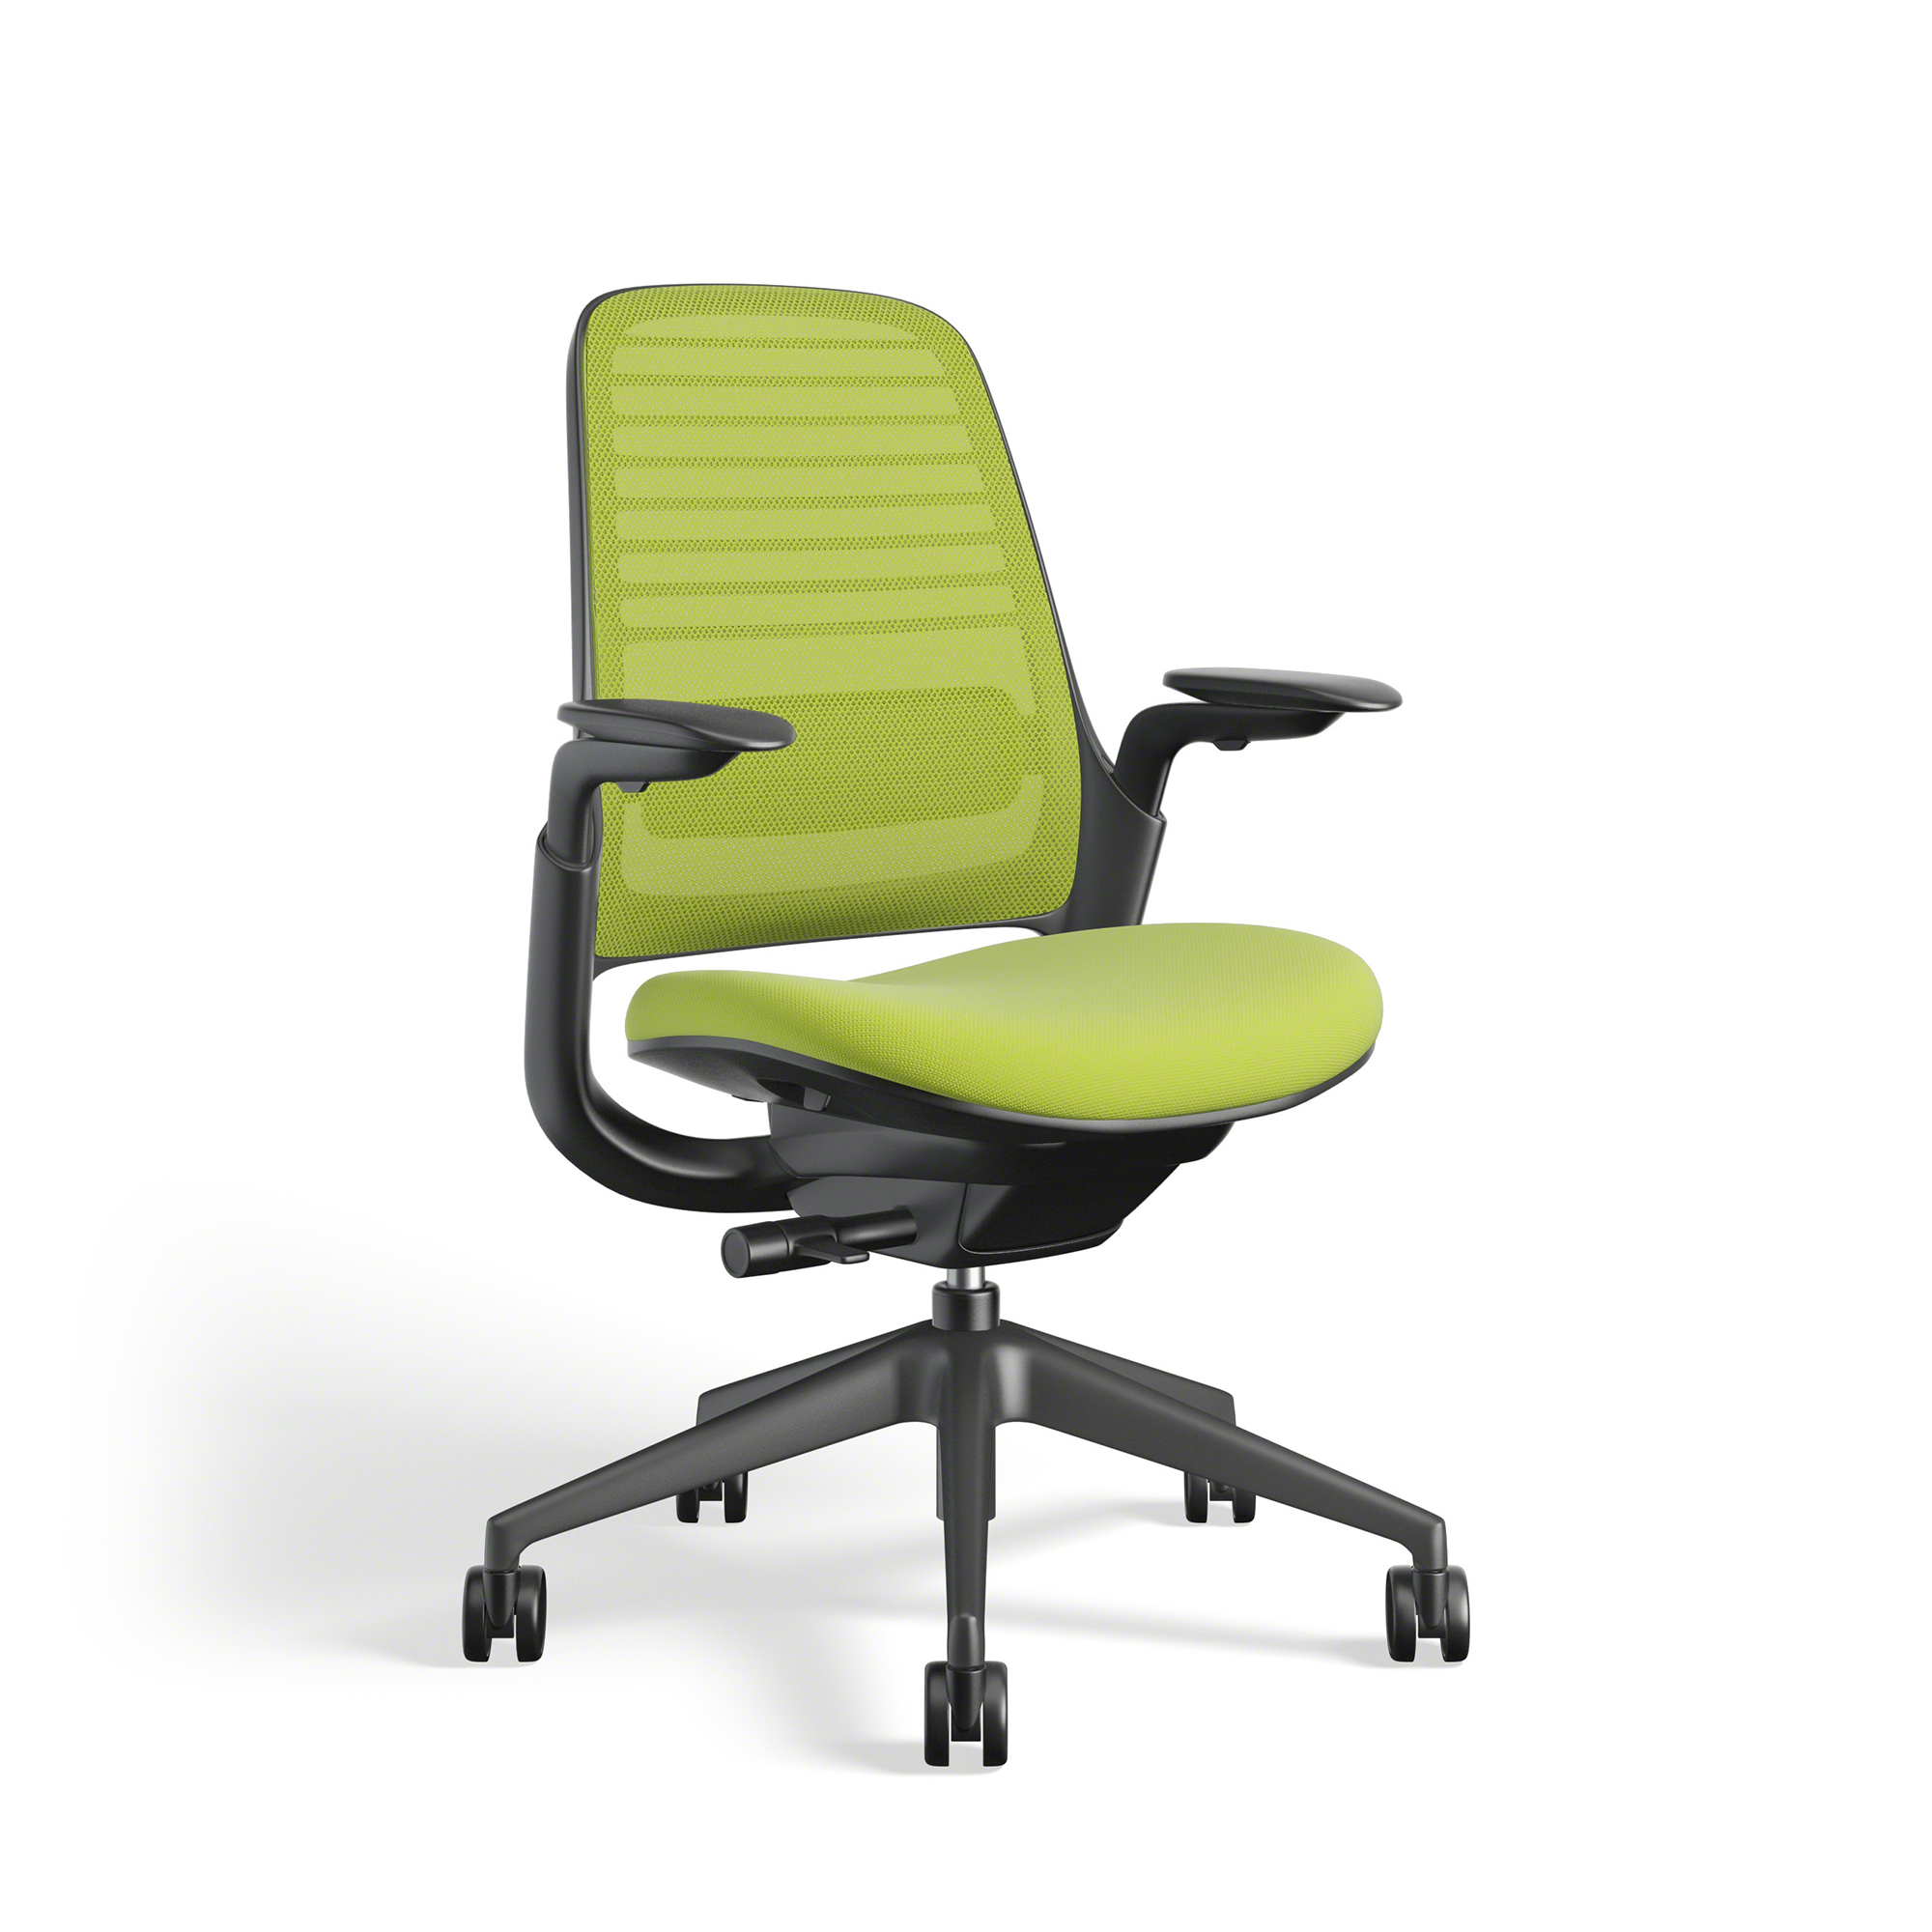 Lime Green Chairs Lime Green Steelcase Series 1 Chair Black Frame Office Furniture Poppin